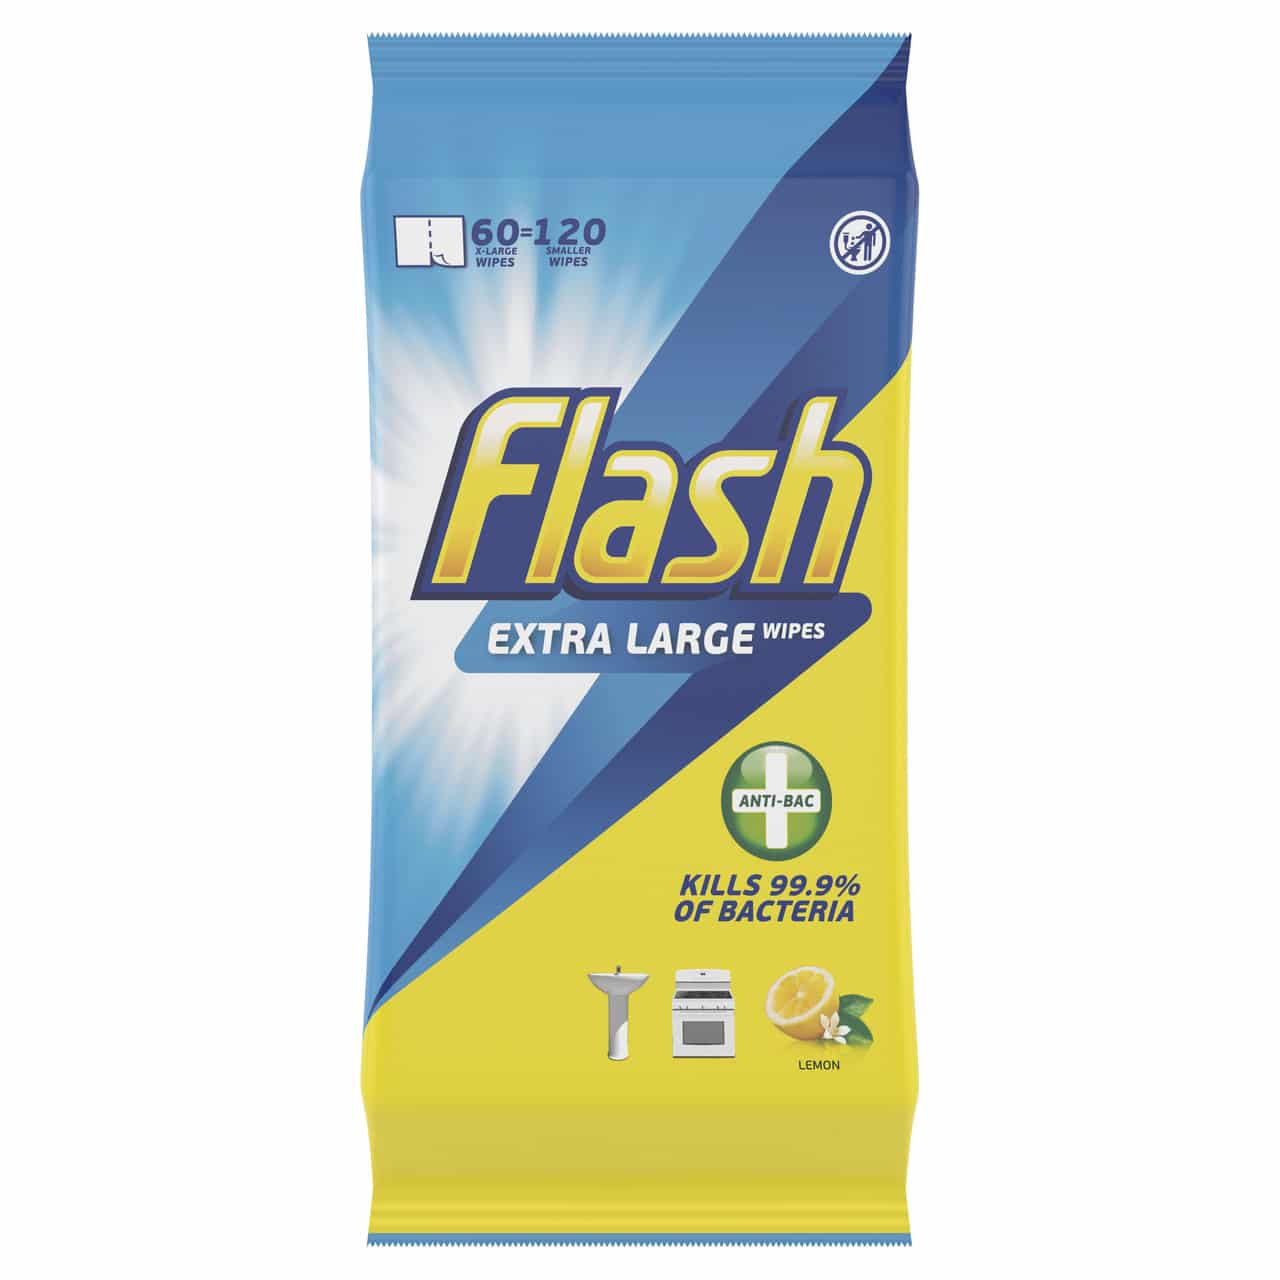 FLASH ANTIBACTERIAL XL WIPES BY 60